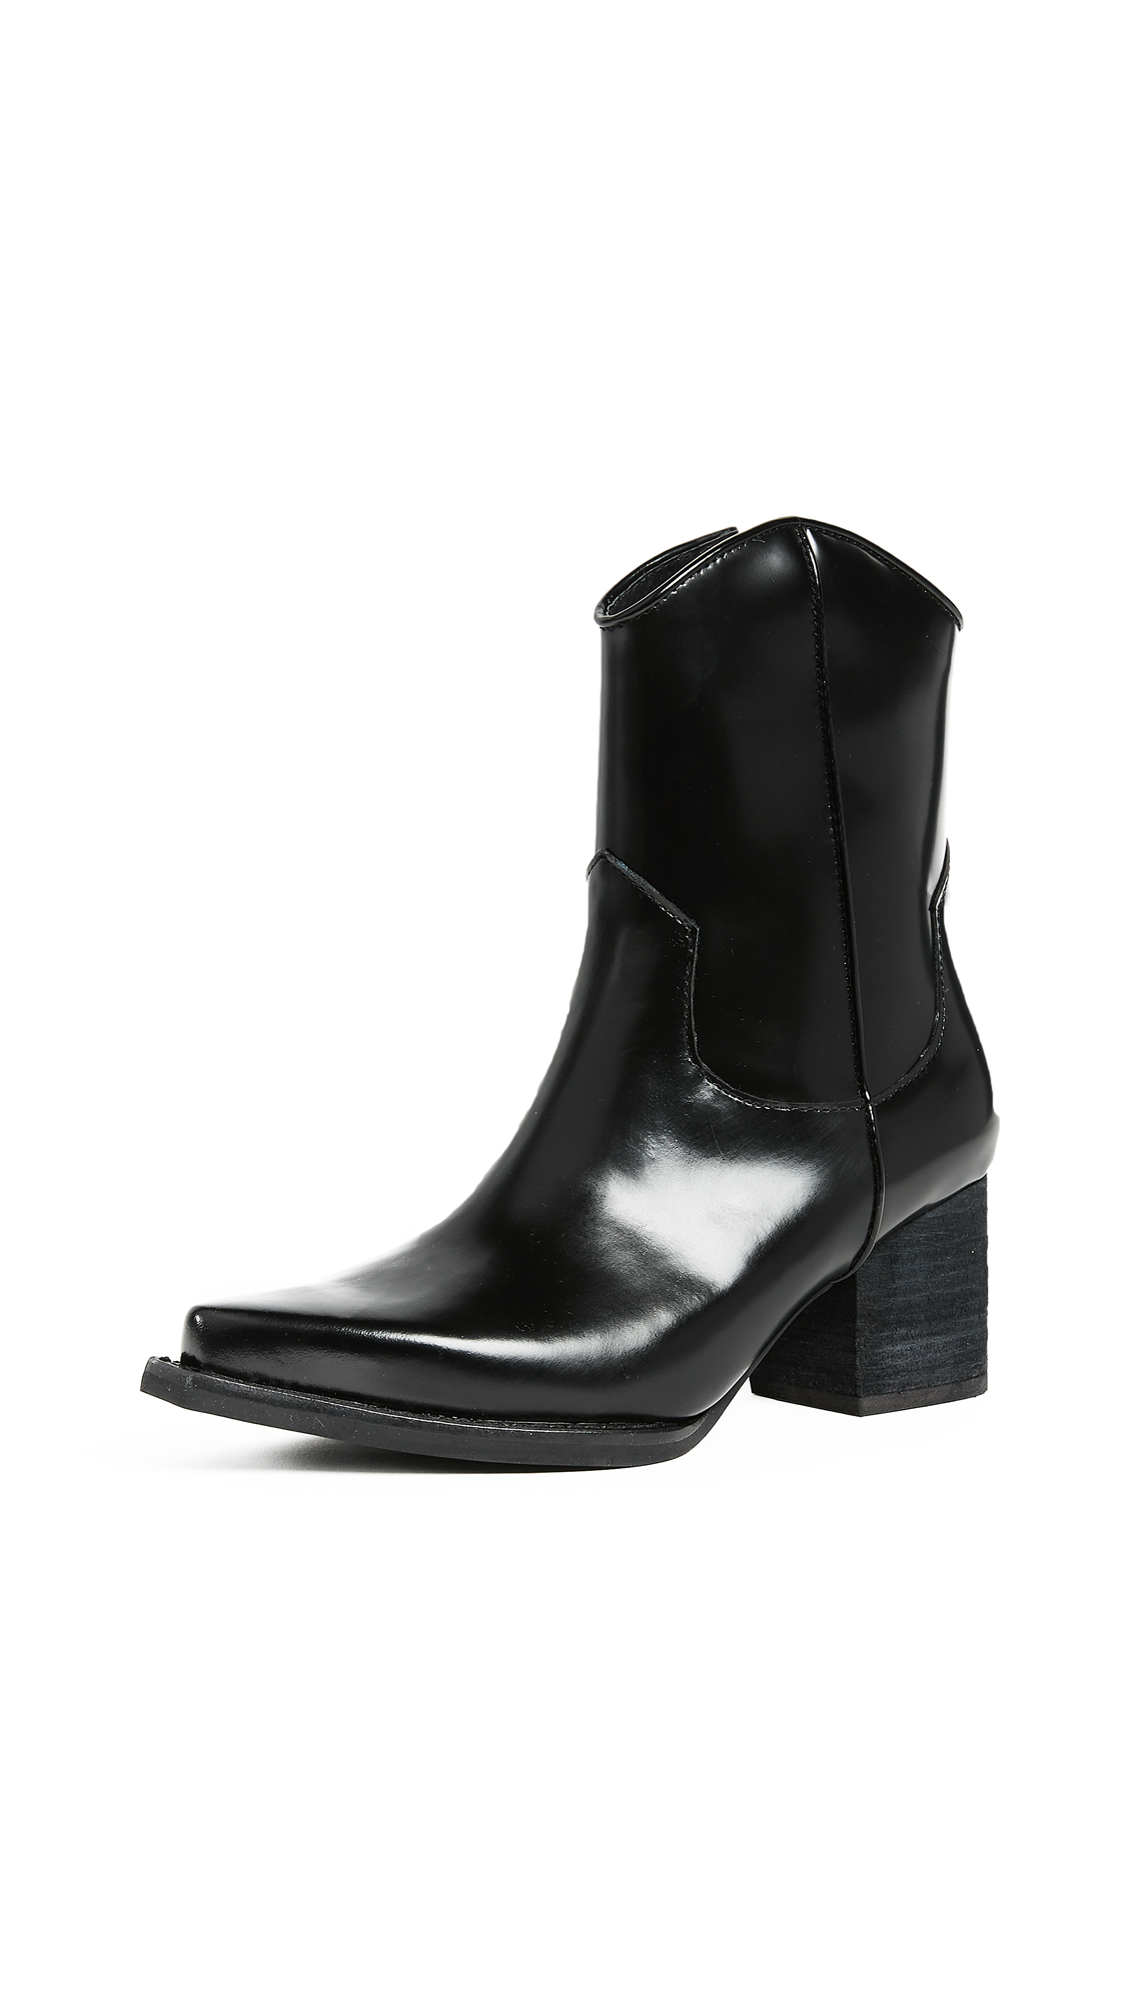 Jeffrey Campbell Larosa Block Heel Boots - Black Box